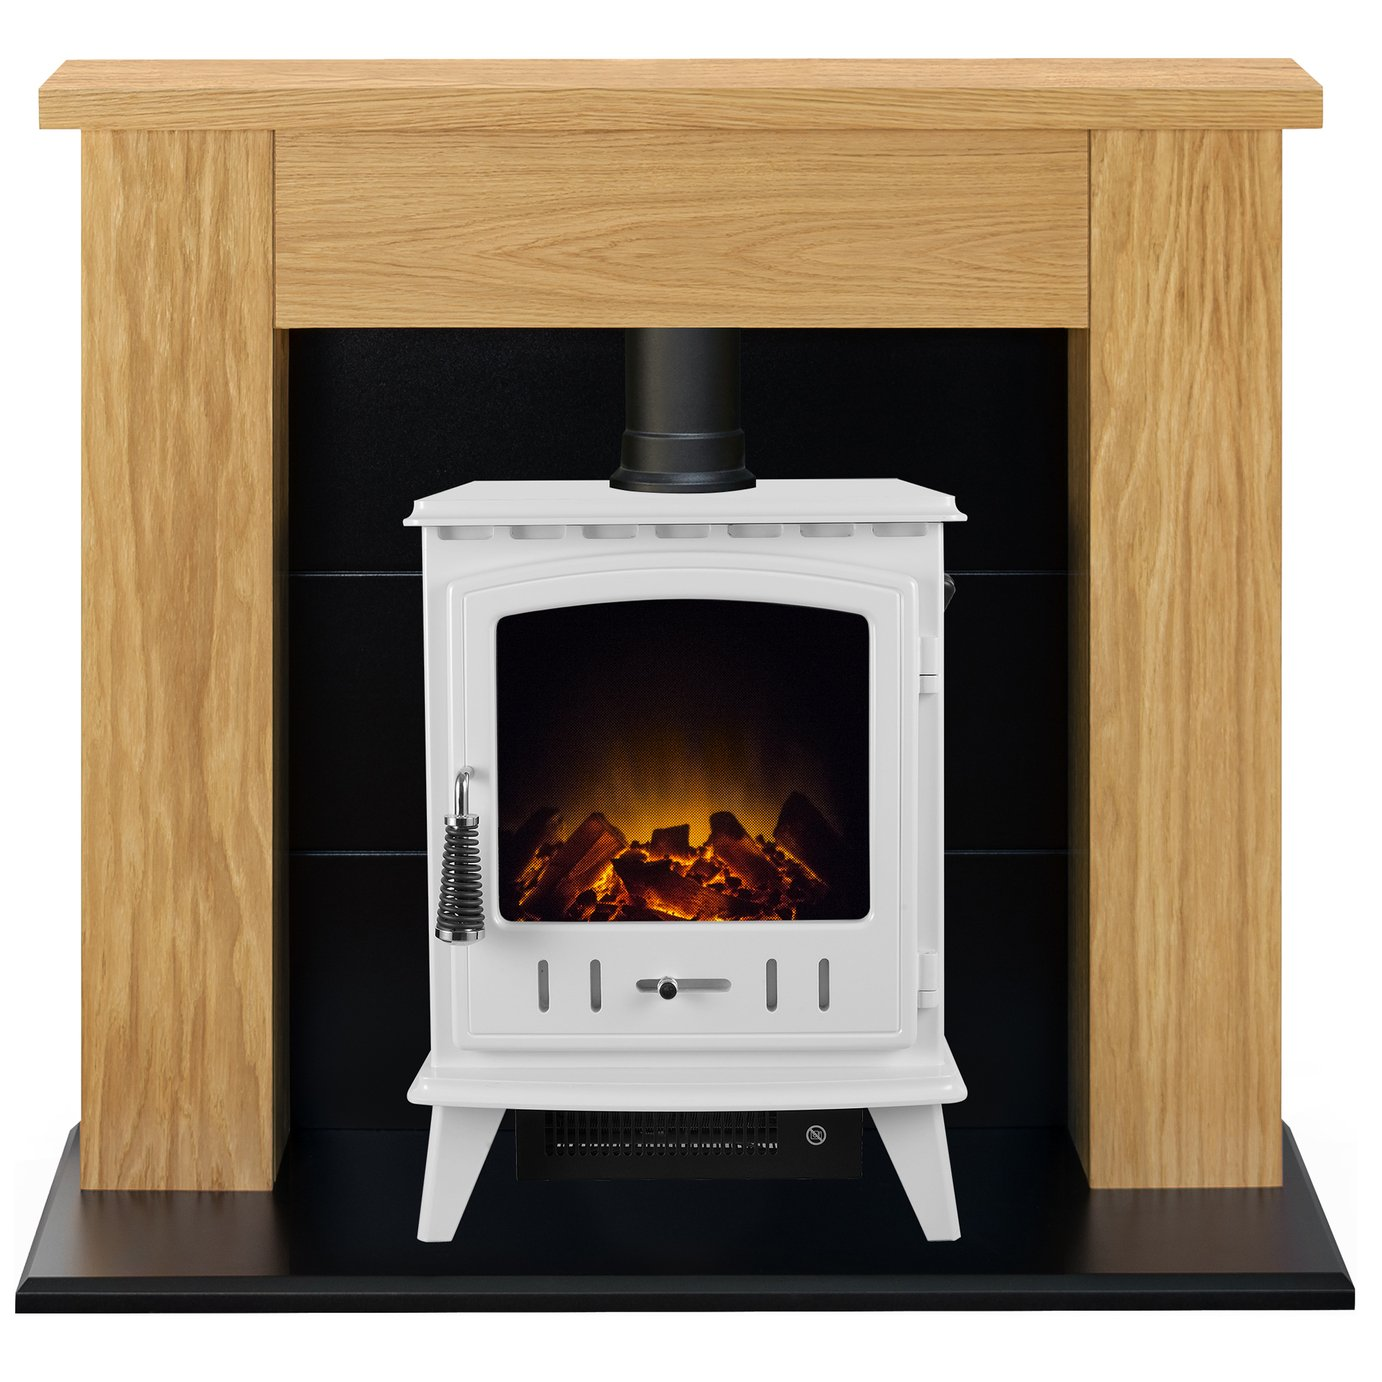 Adam Aviemore 2kW Electric Stove Fire Suite - Oak & Black